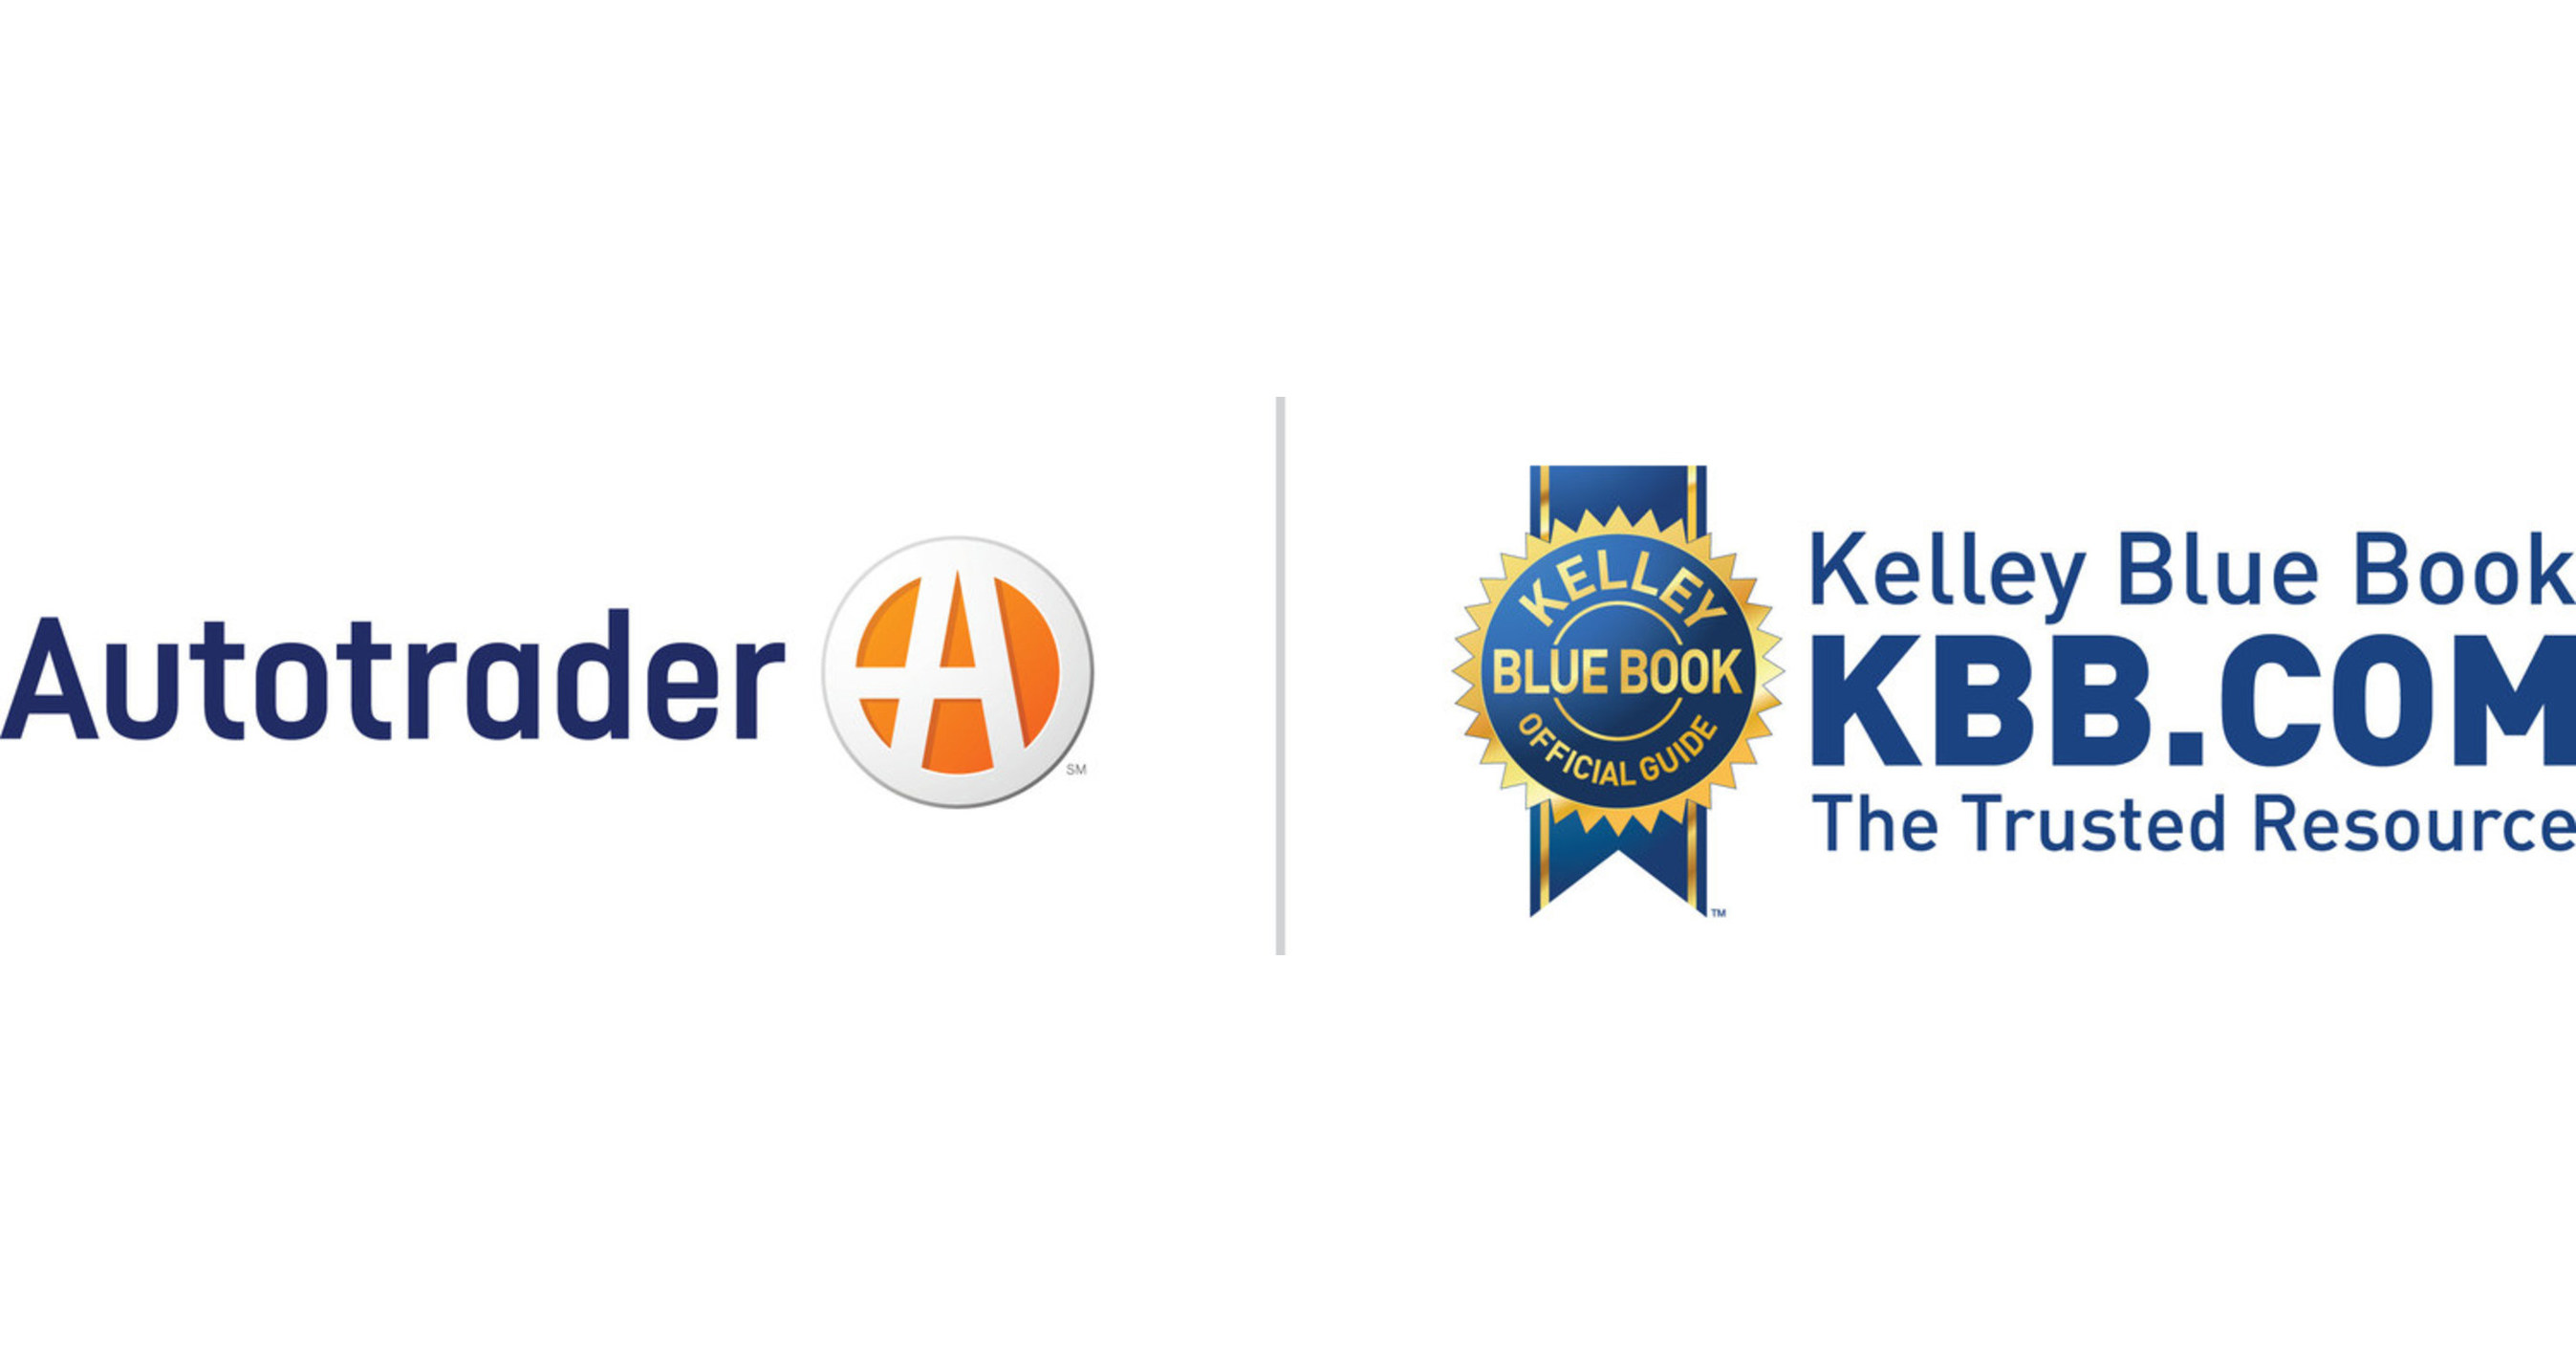 Autotrader and kelley blue book audience extension program reinvents social media advertising